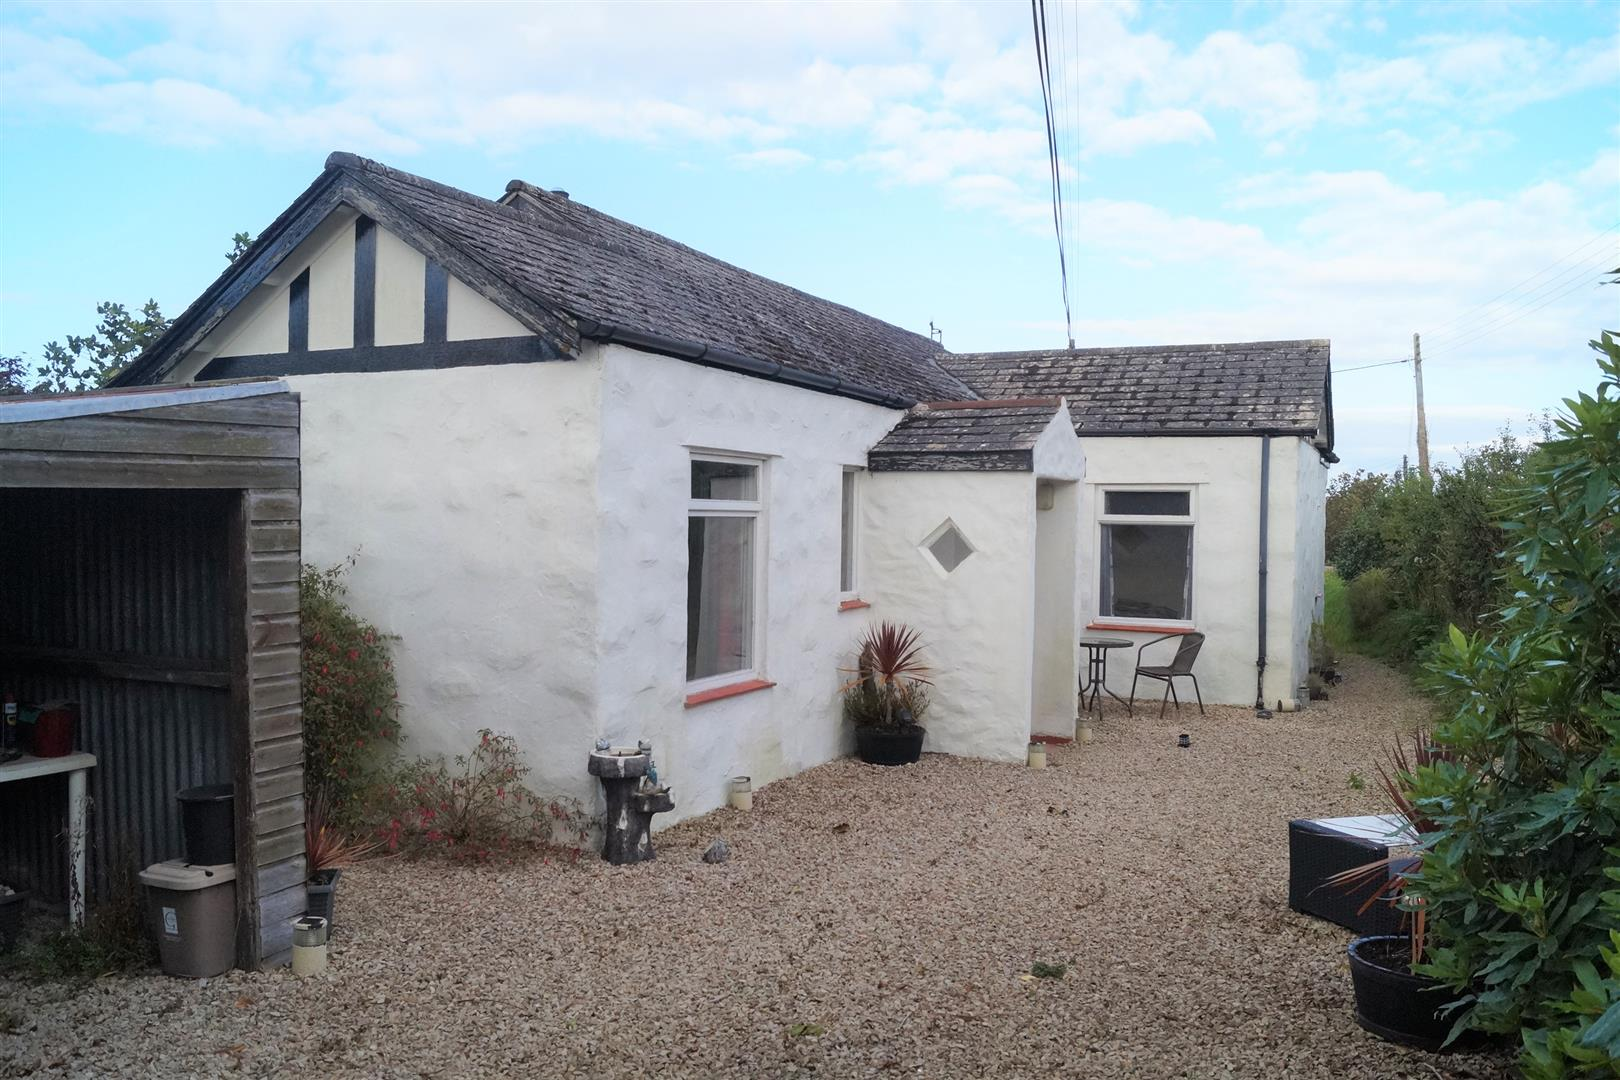 Abersoch, Pwllheli - £180,000/Offers in the region of